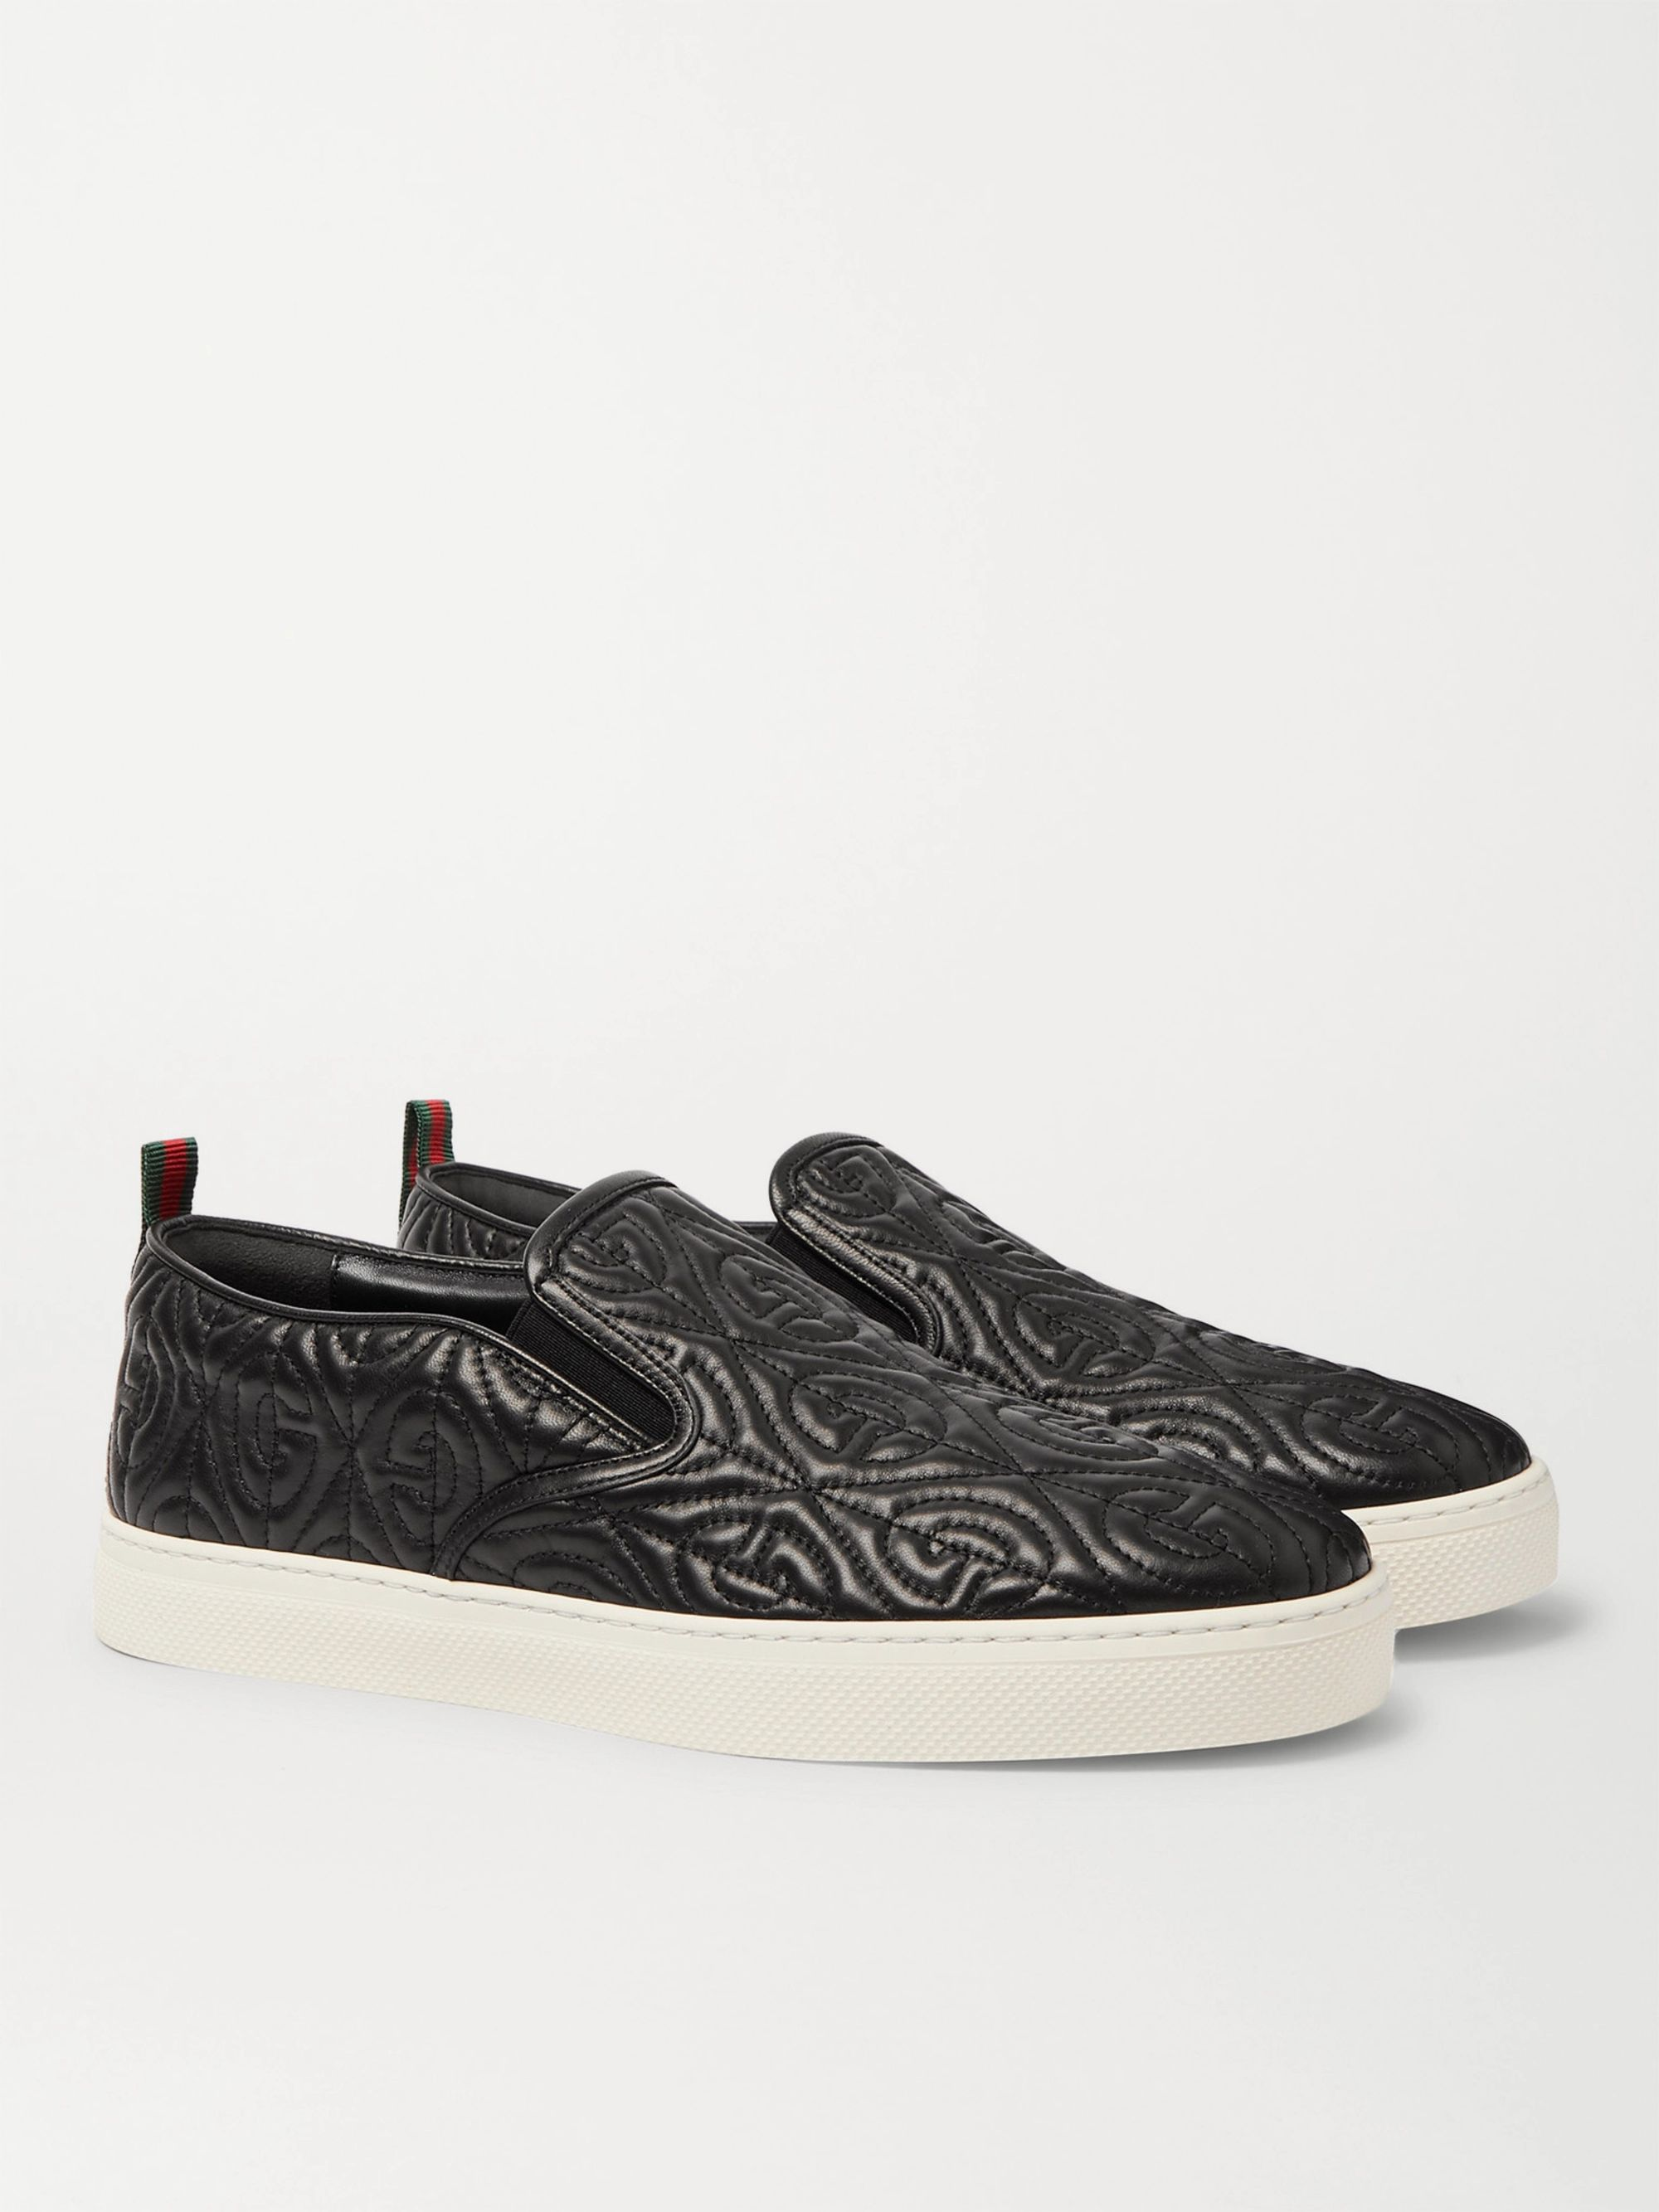 Gucci Dublin Quilted Leather Slip-On Sneakers